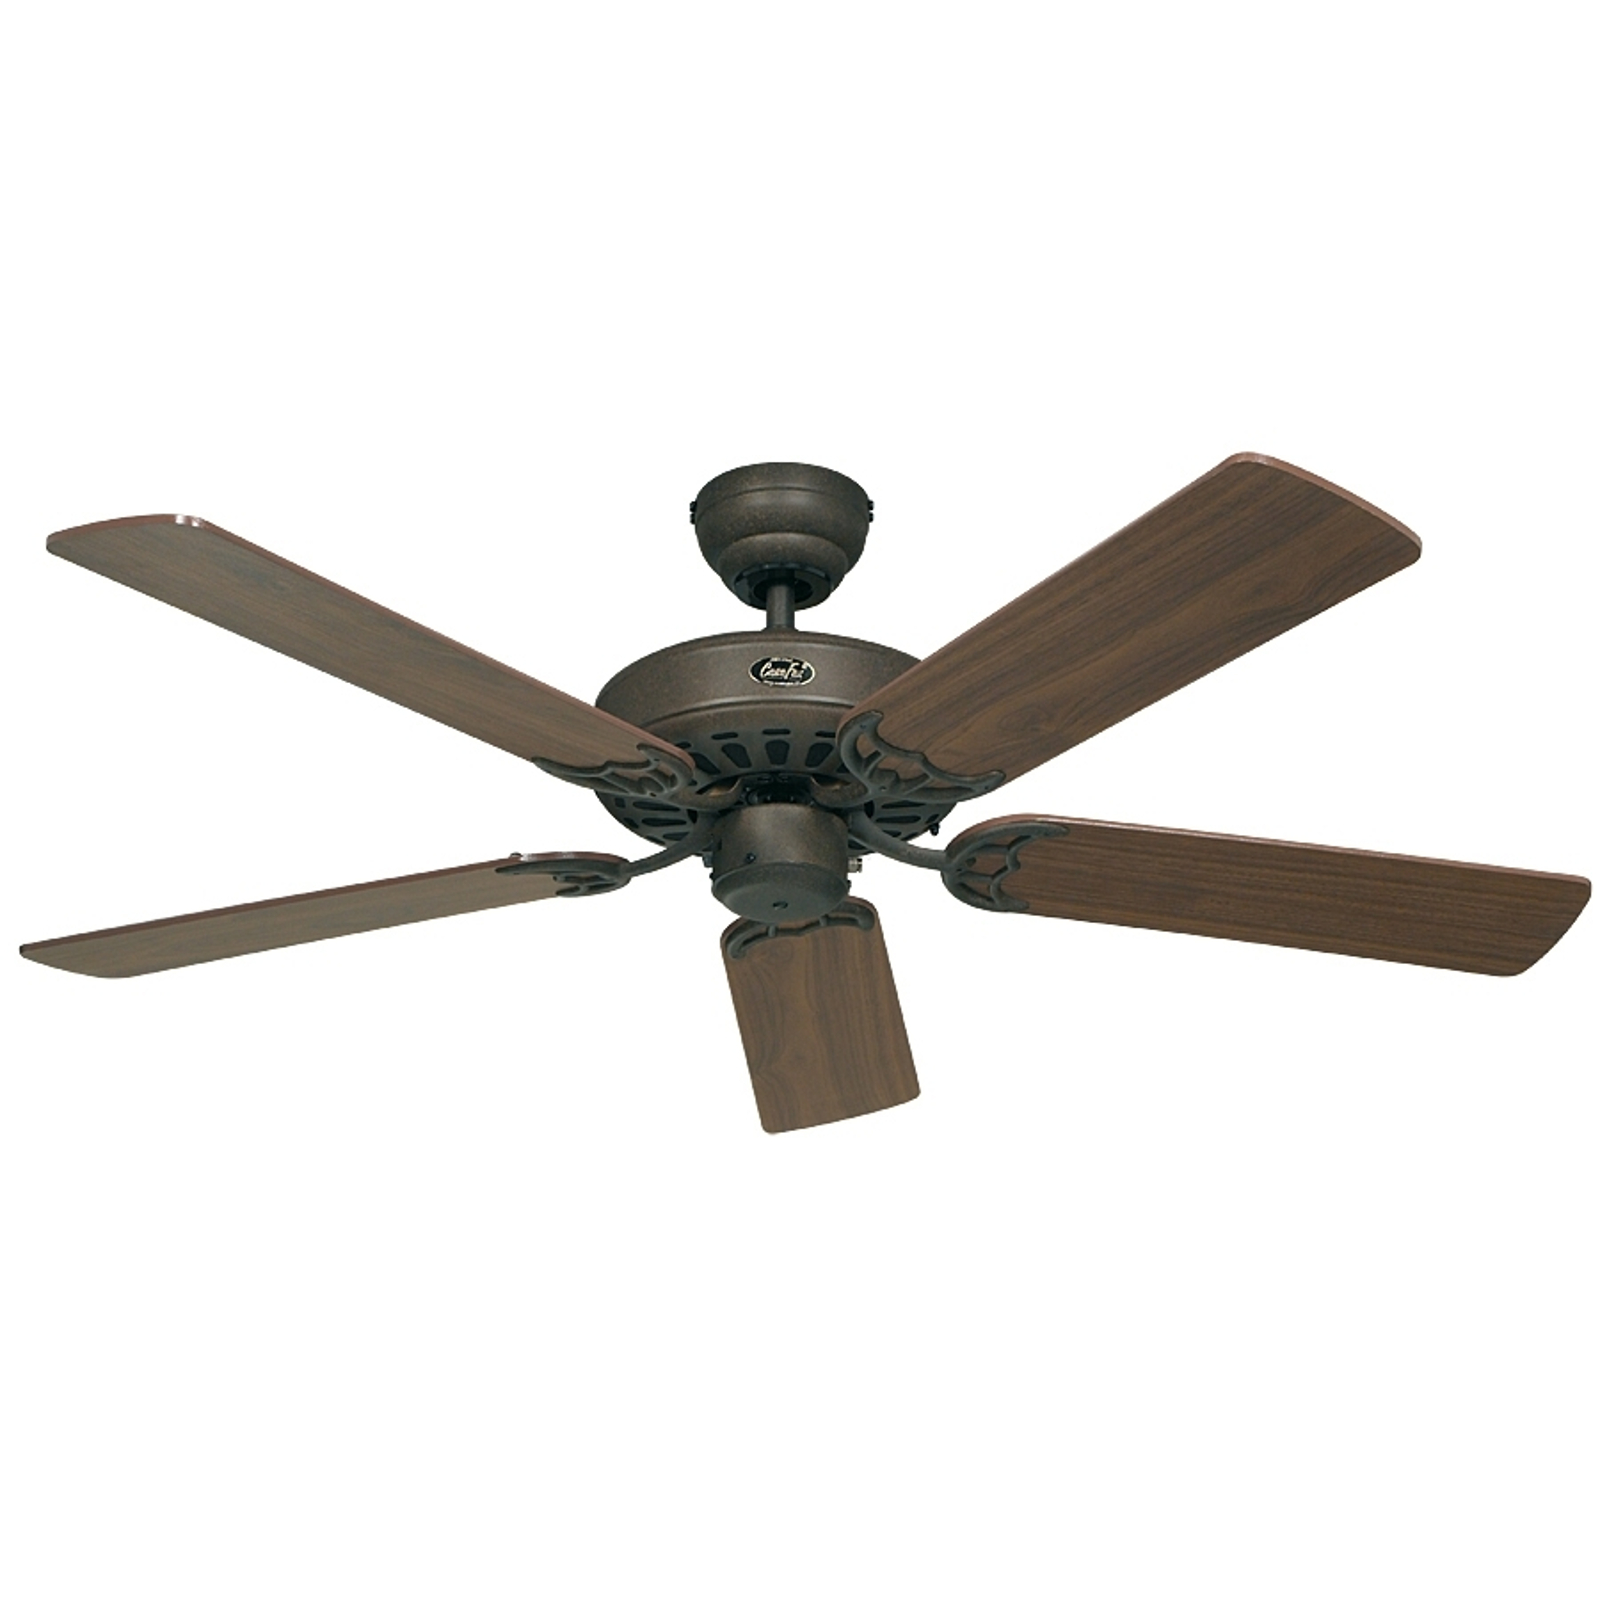 Stylish ceiling fan Classic Royal walnut_2015002_1